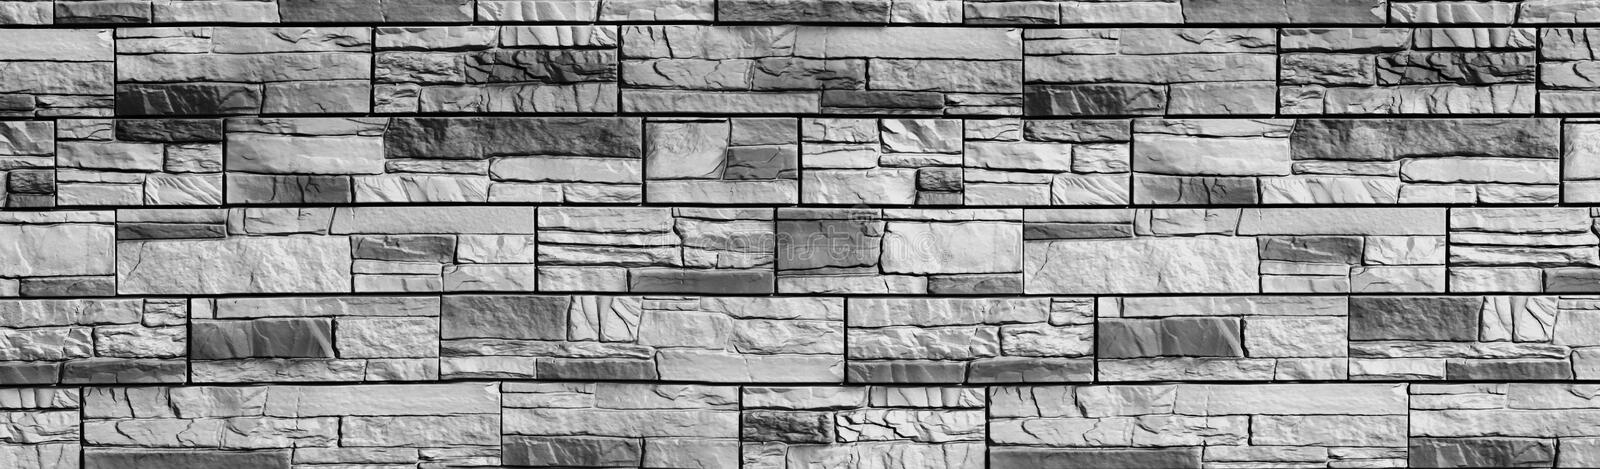 Stone wall brick texture background stock photography